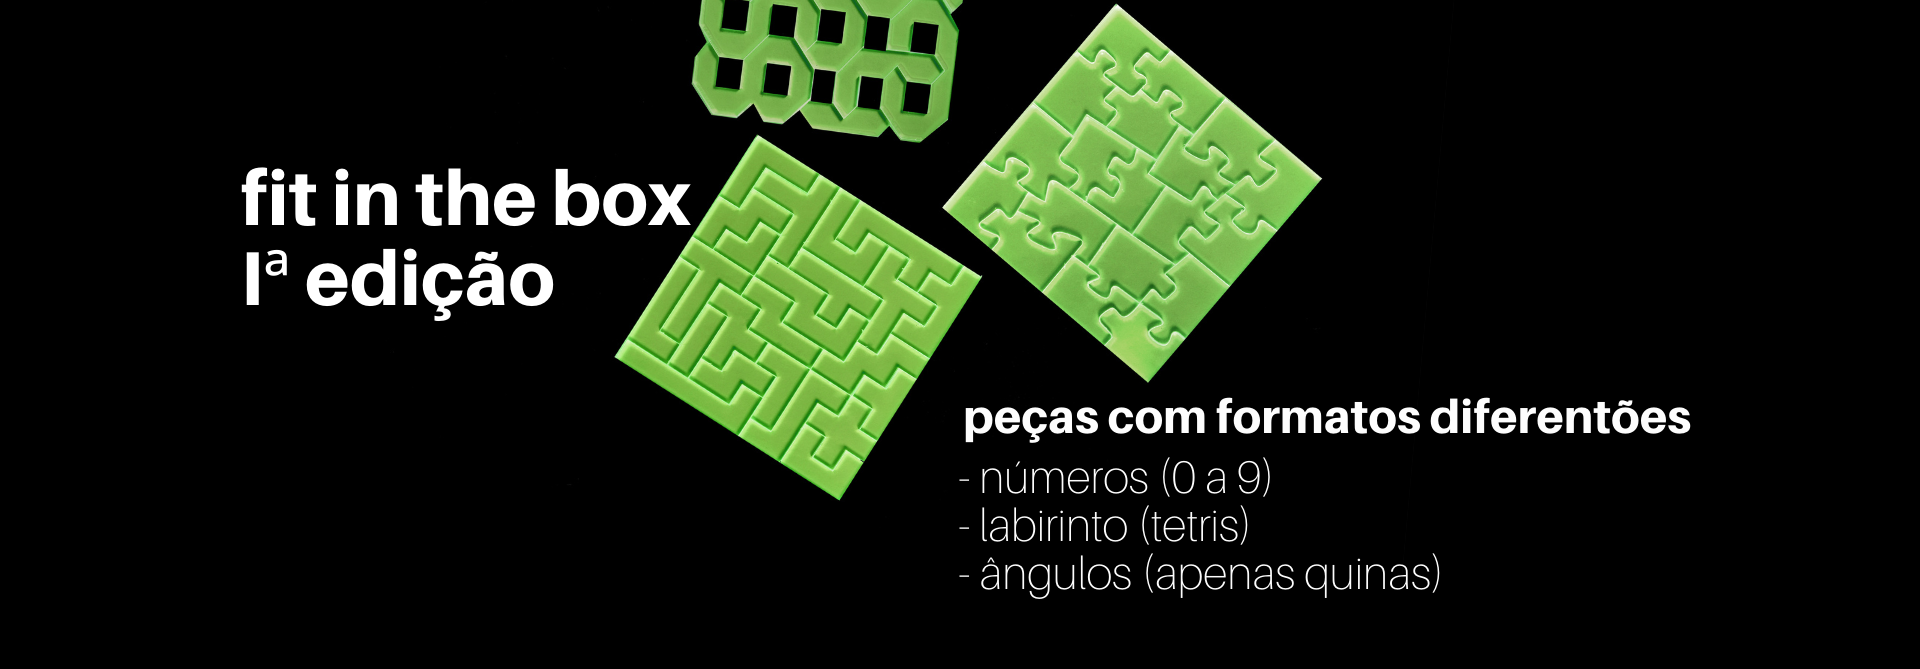 fit in the box 1 edicao.png